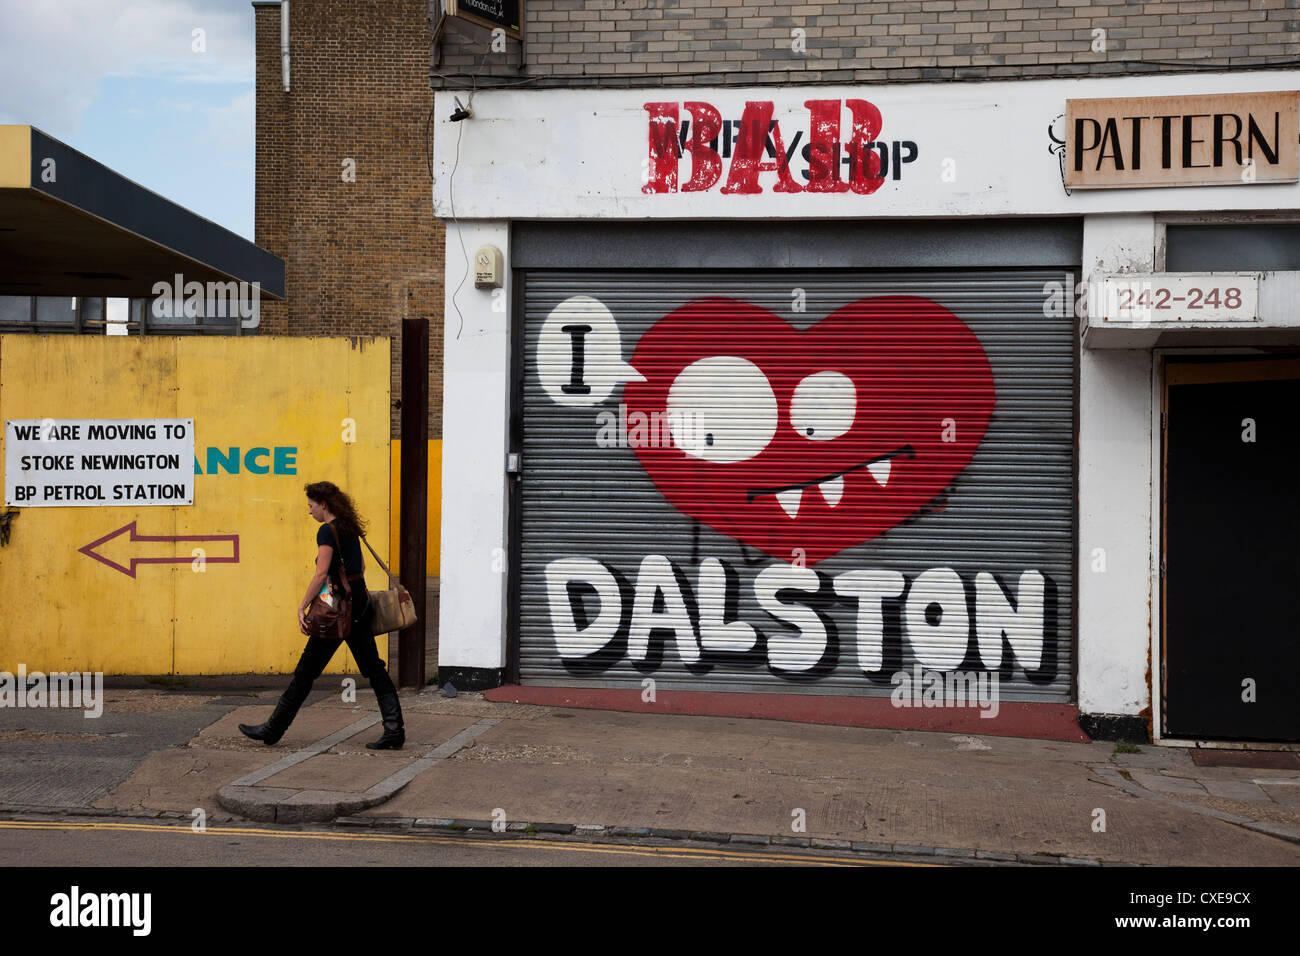 I Love Dalston street art graffiti shutters in this fashionable East End area of London, UK. - Stock Image